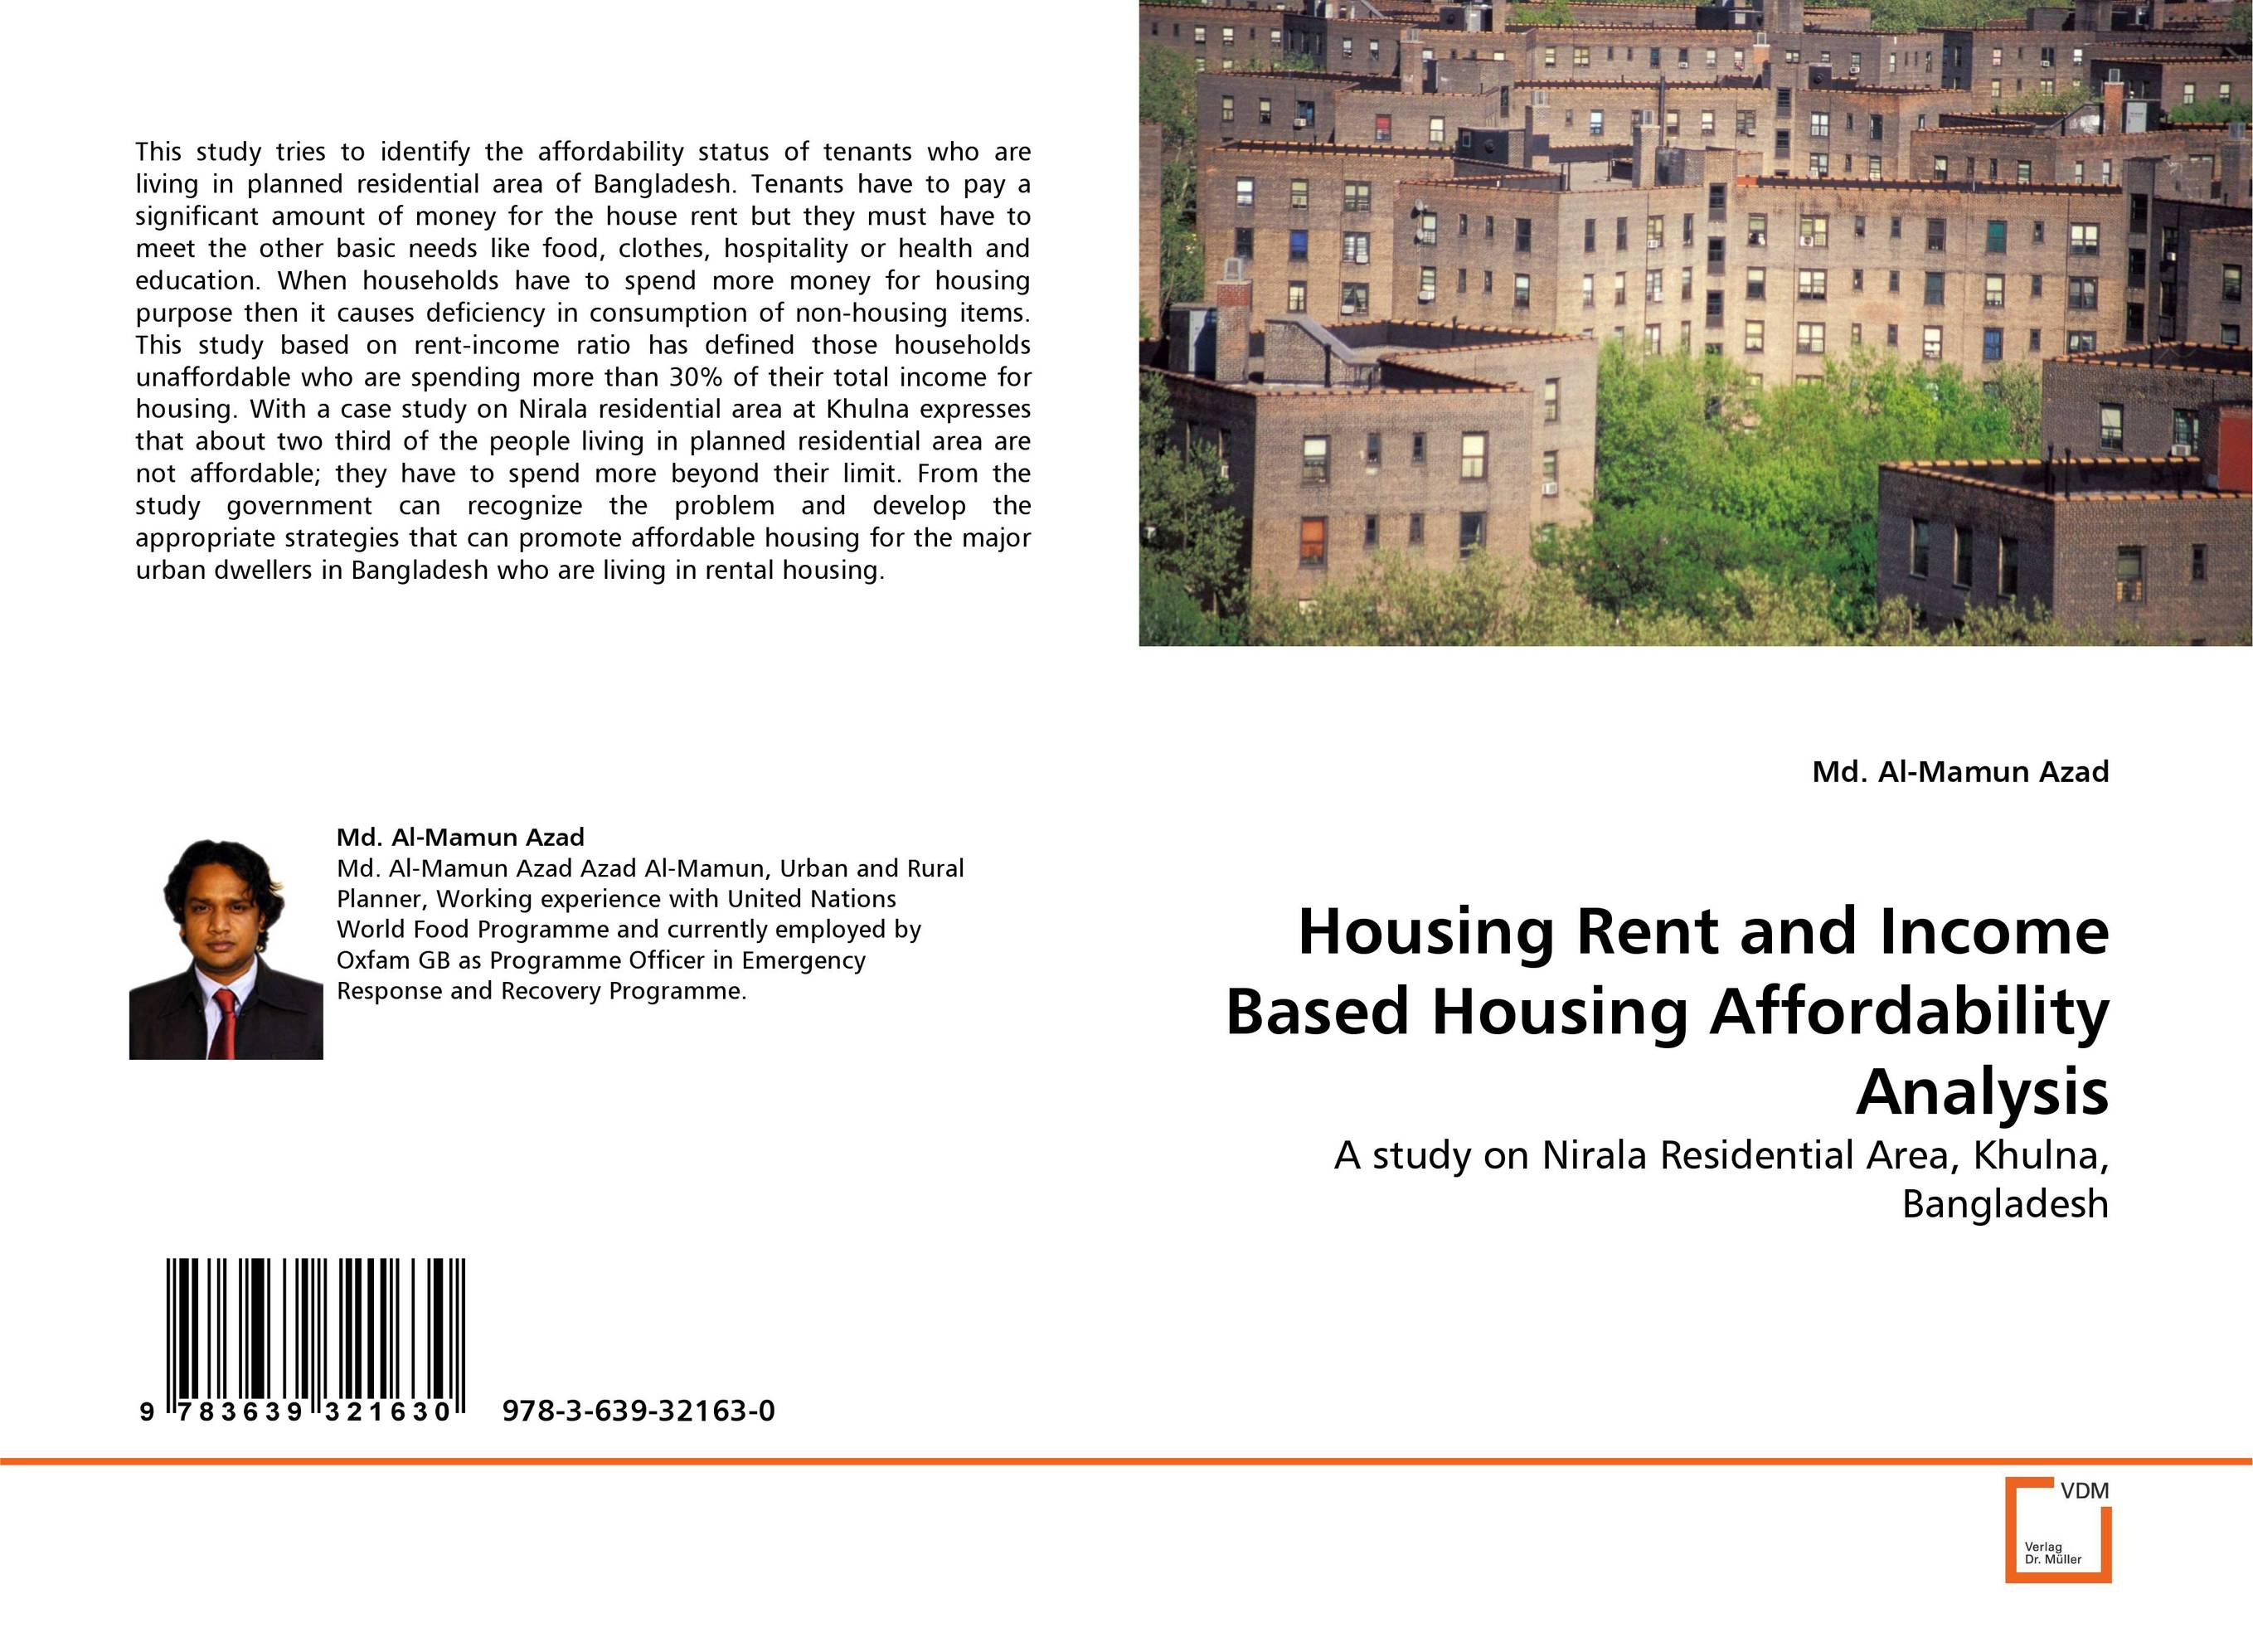 Housing Rent and Income Based Housing Affordability Analysis